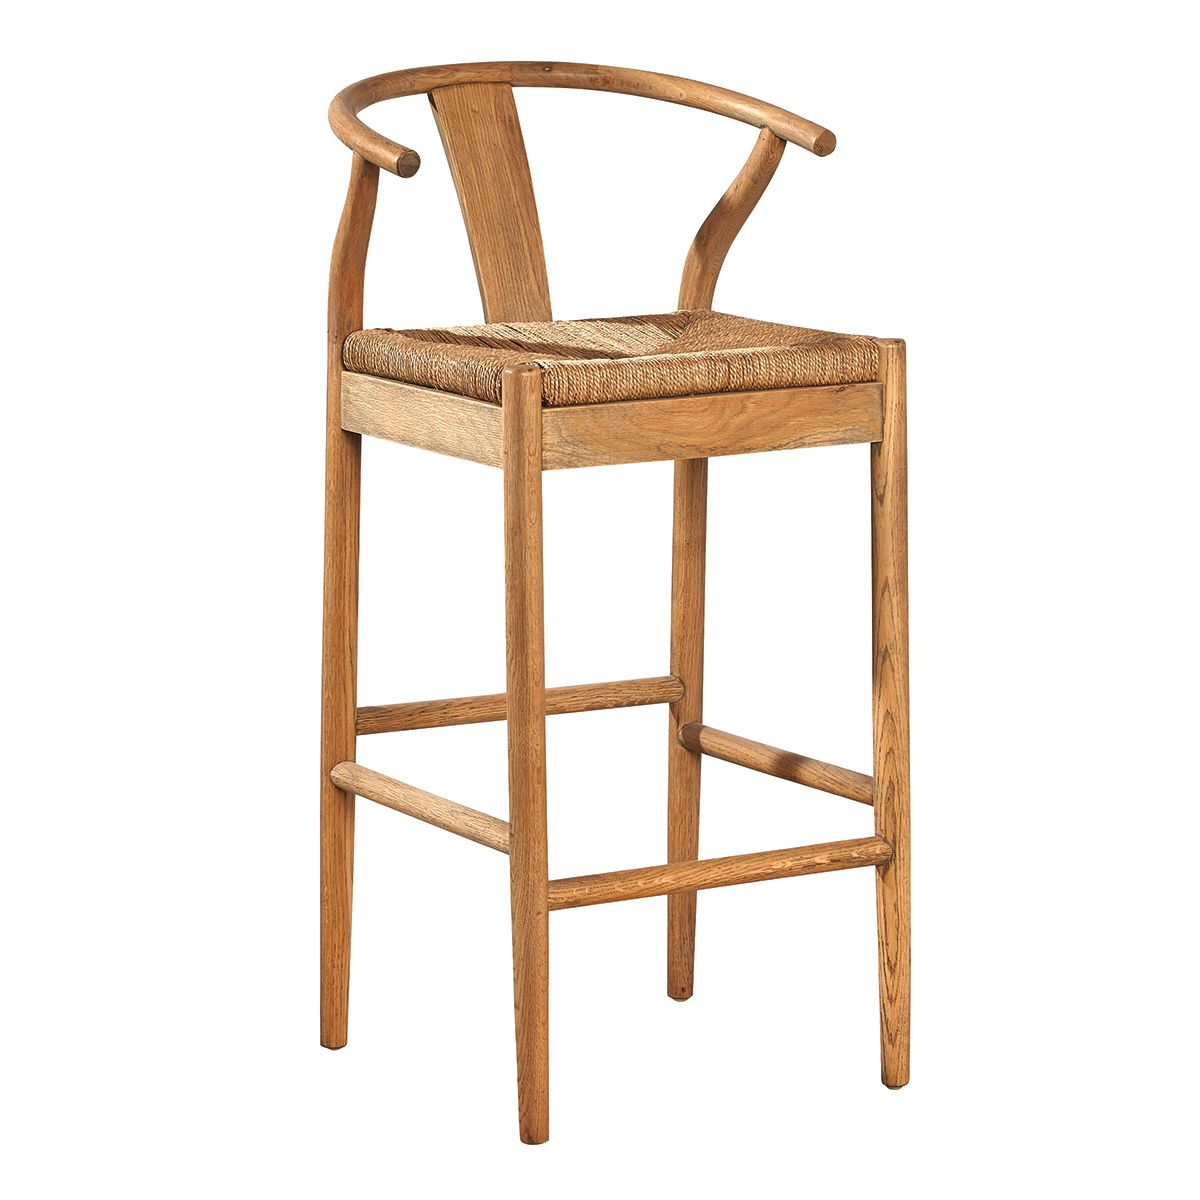 The dump furniture outlet wishbone barstool home decorating pinterest dump furniture Home bar furniture clearance